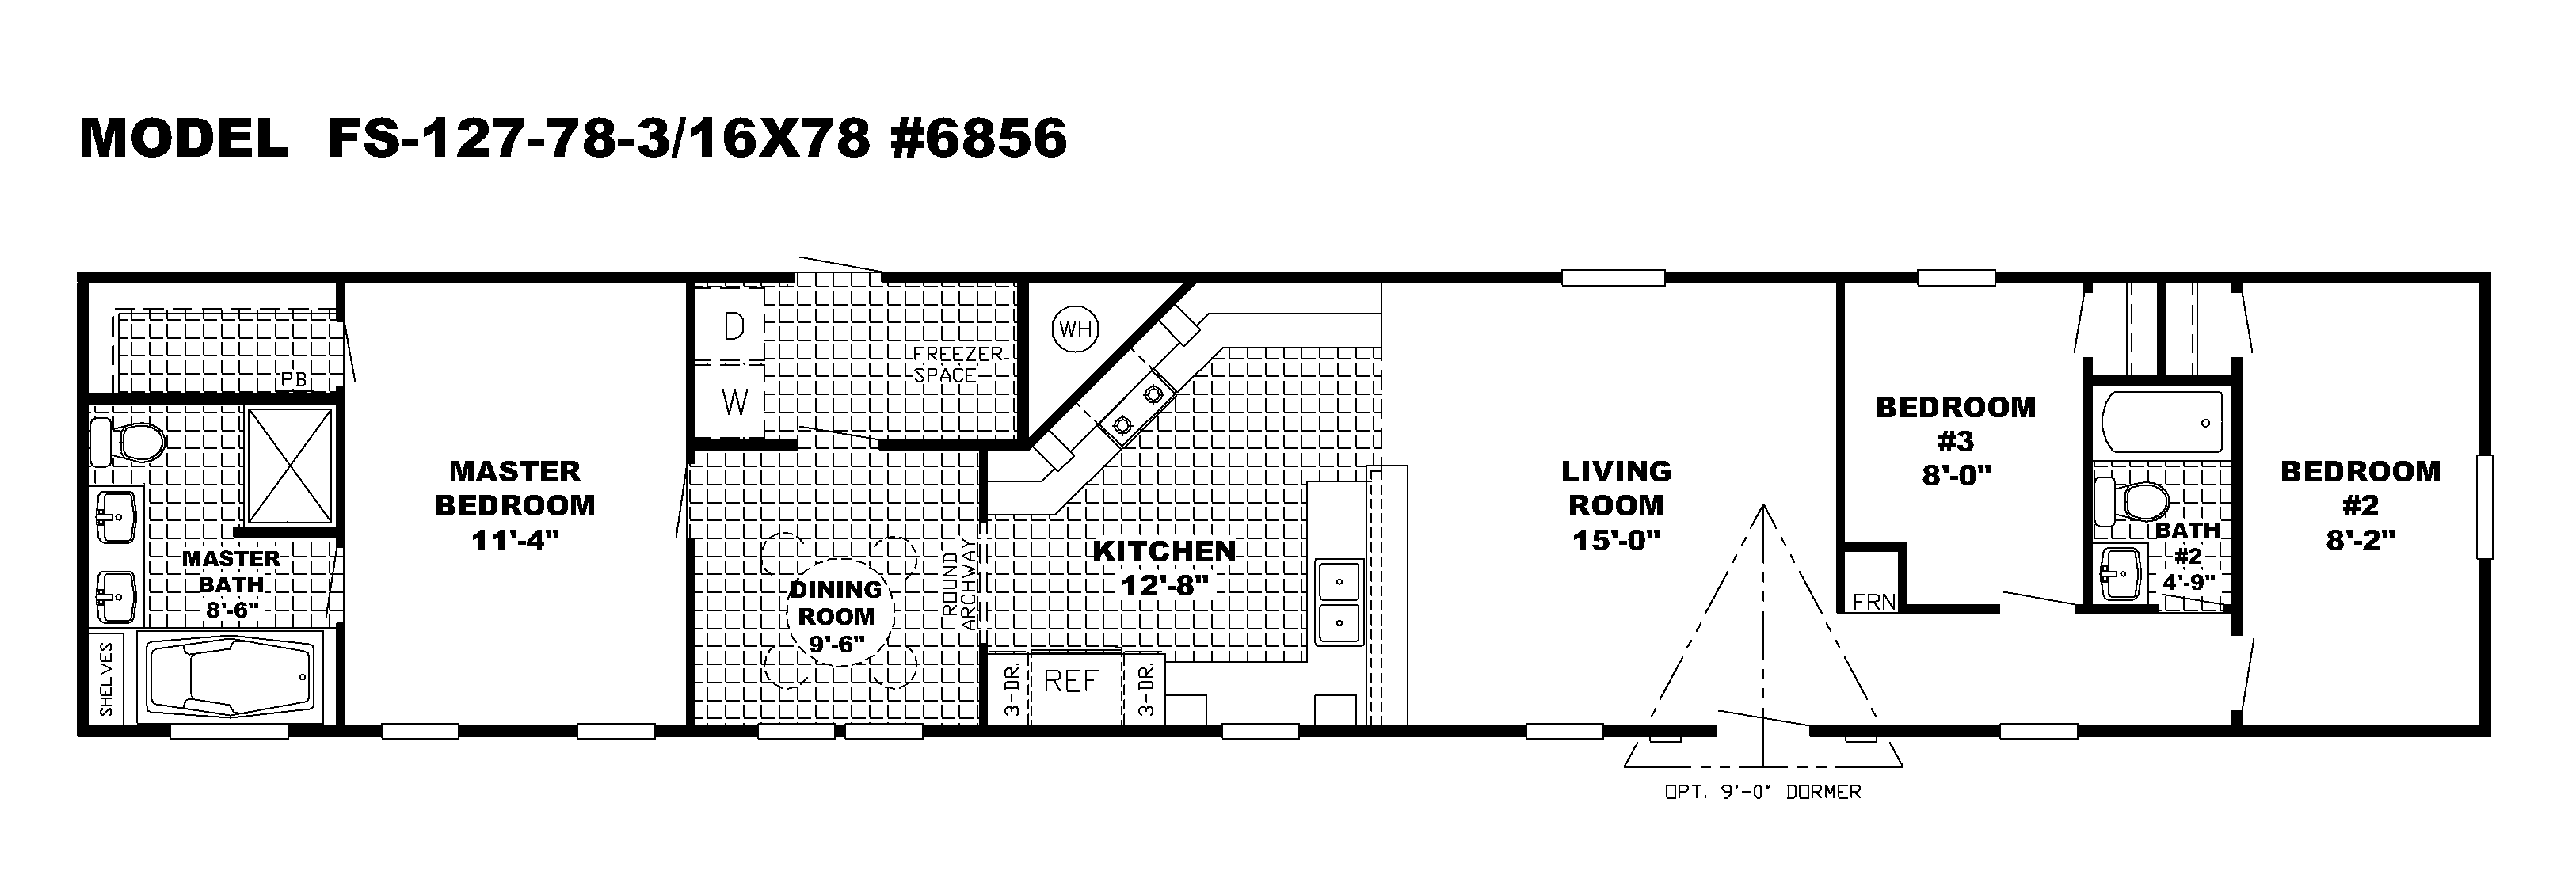 Perfect Scotbilt Mobile Home Floor Plans Singelwide | CAVCO HOMES FLOOR PLAN  1876CR 3 BEDROOM 2 BATH SINGLE WIDE.png | House | Pinterest | Single Wide,  ...